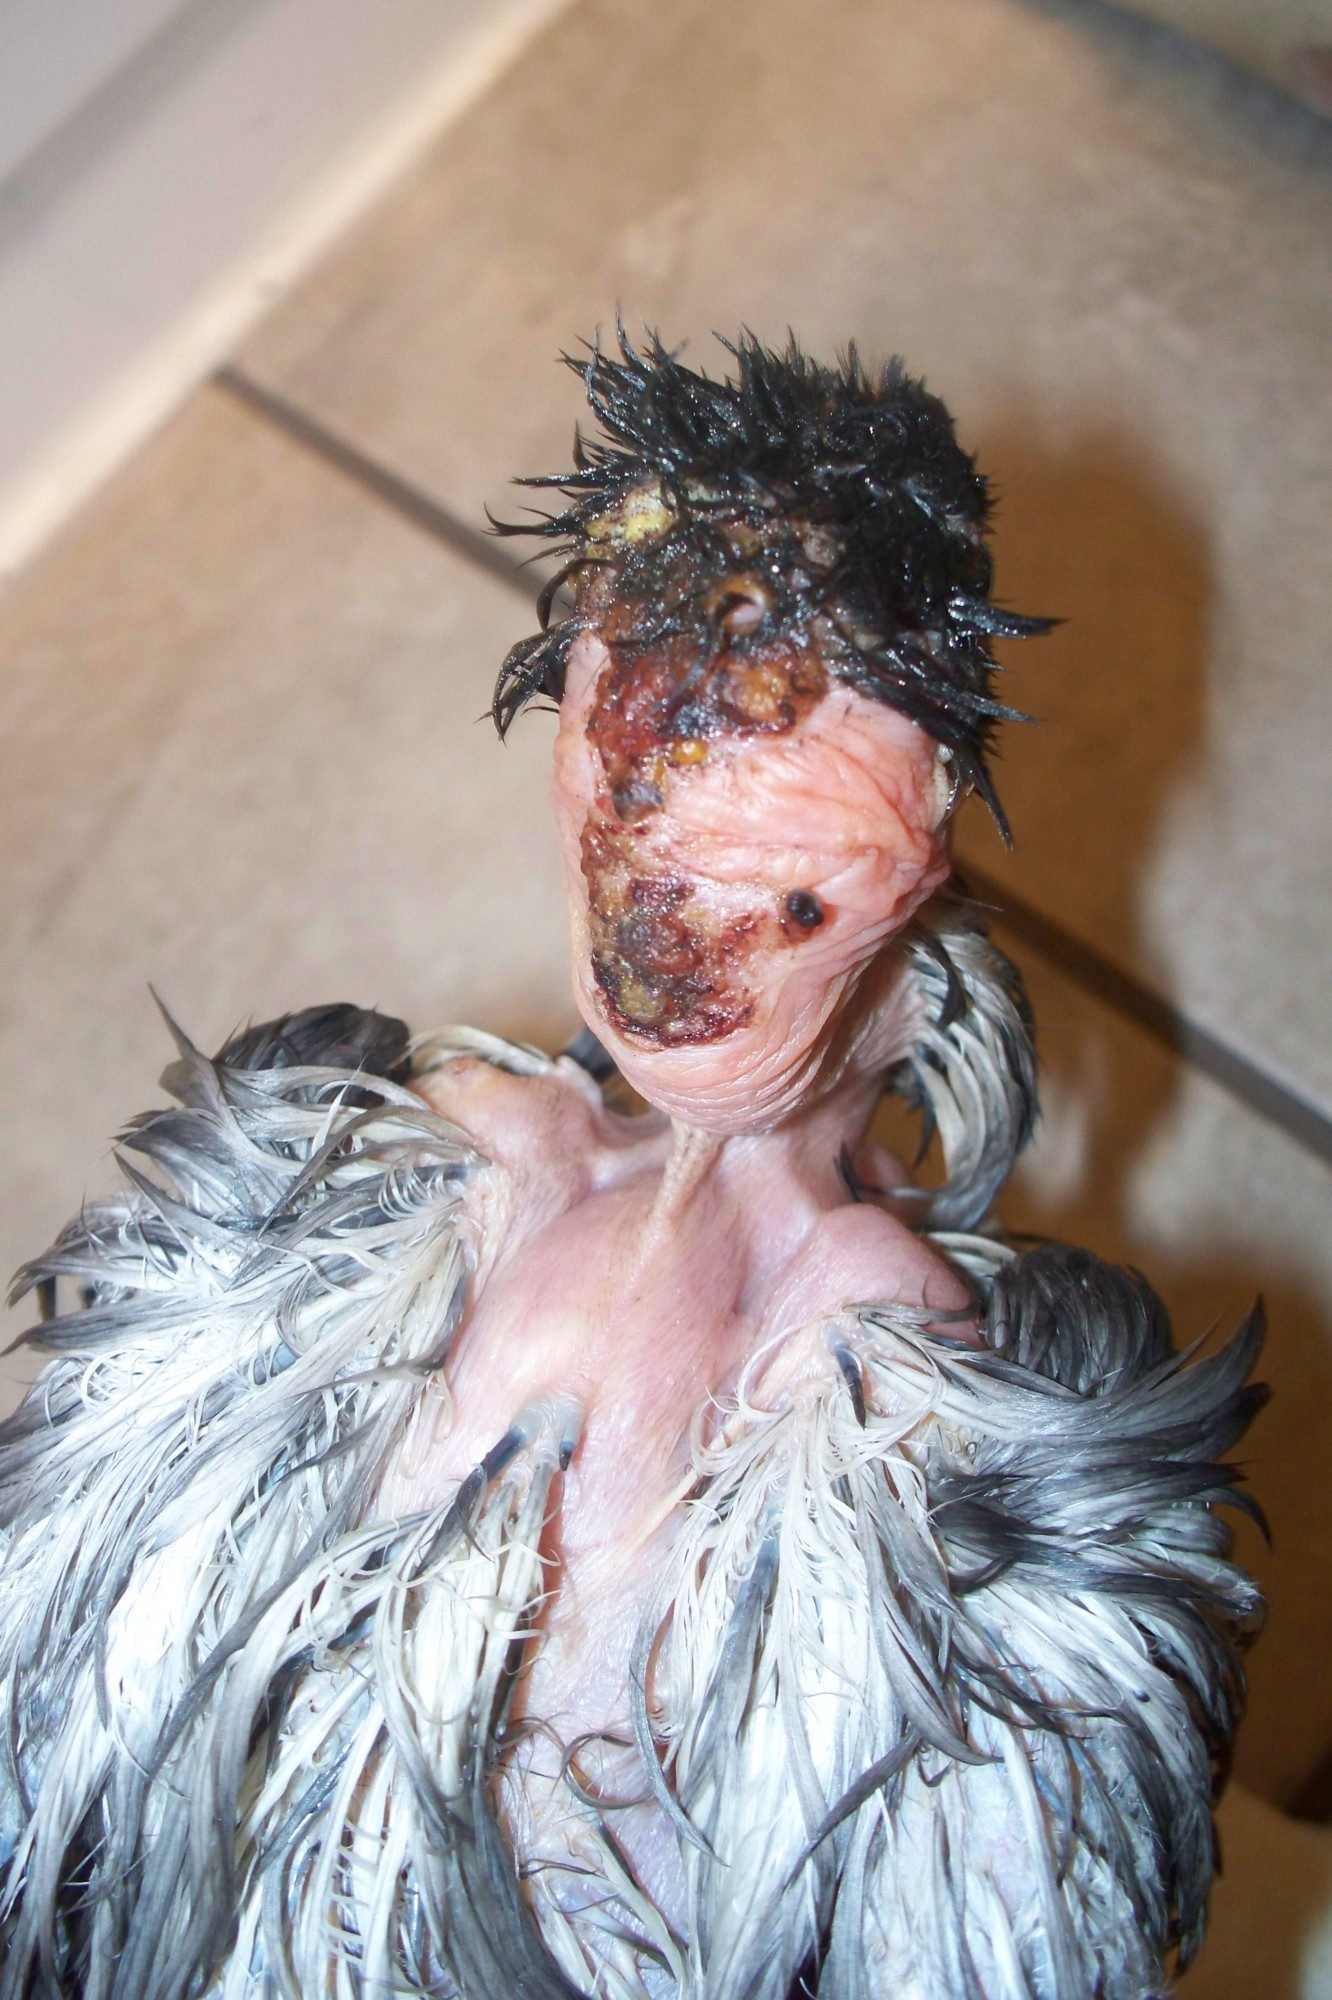 How I Saved My Chicken After A Hawk Attack Graphic Wound Pics